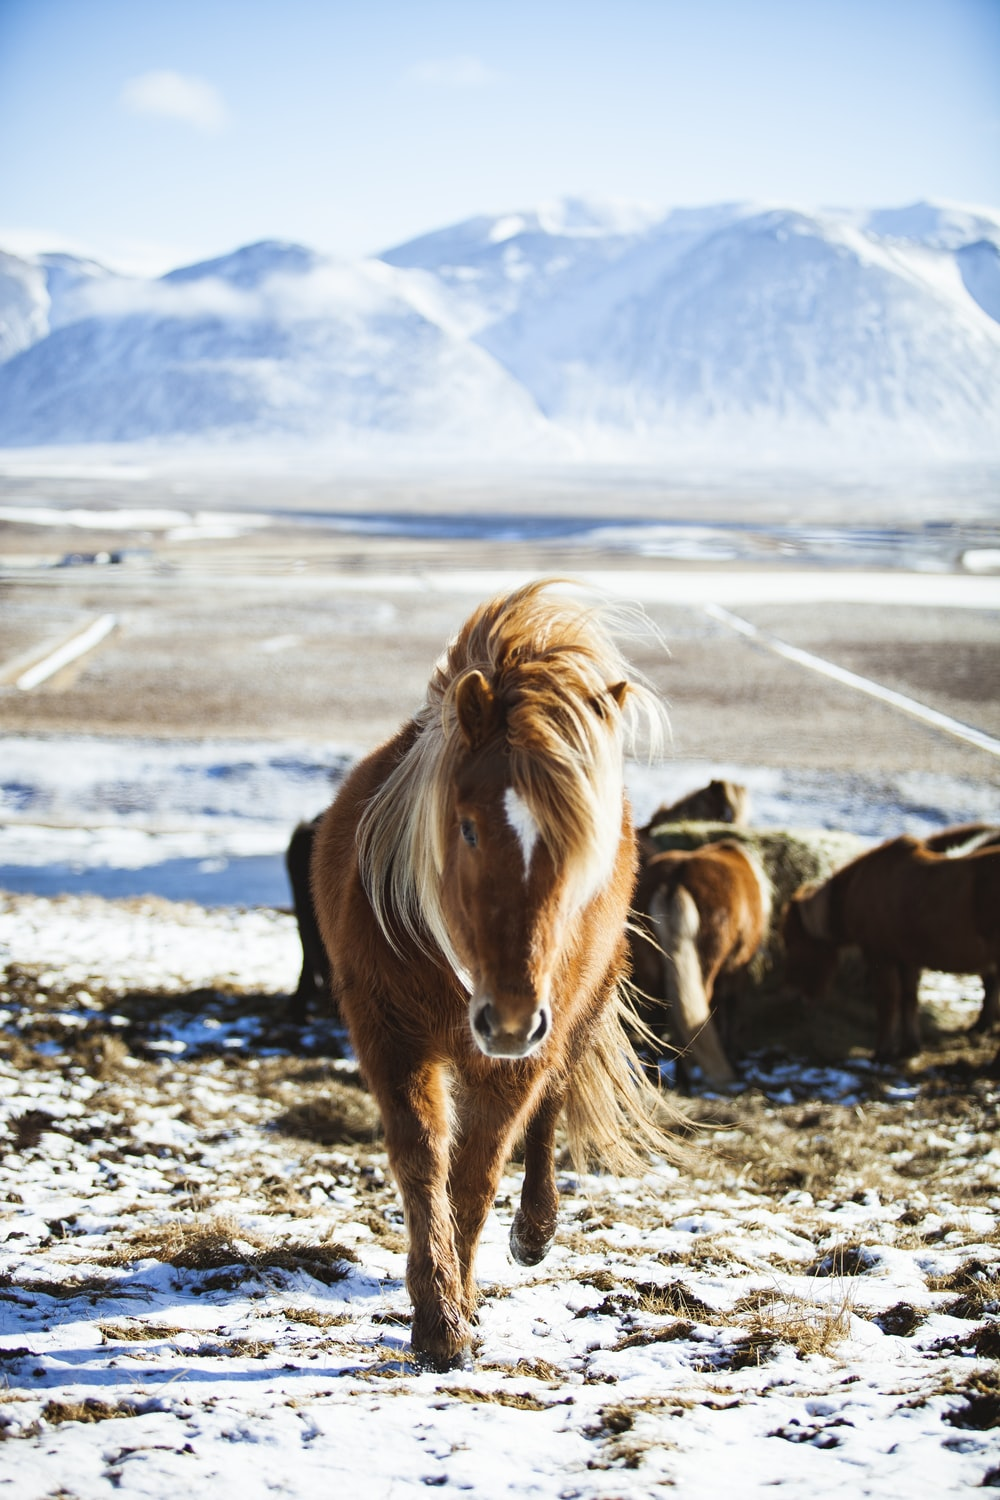 close-up photography of brown horse walking front of ice-capped mountain